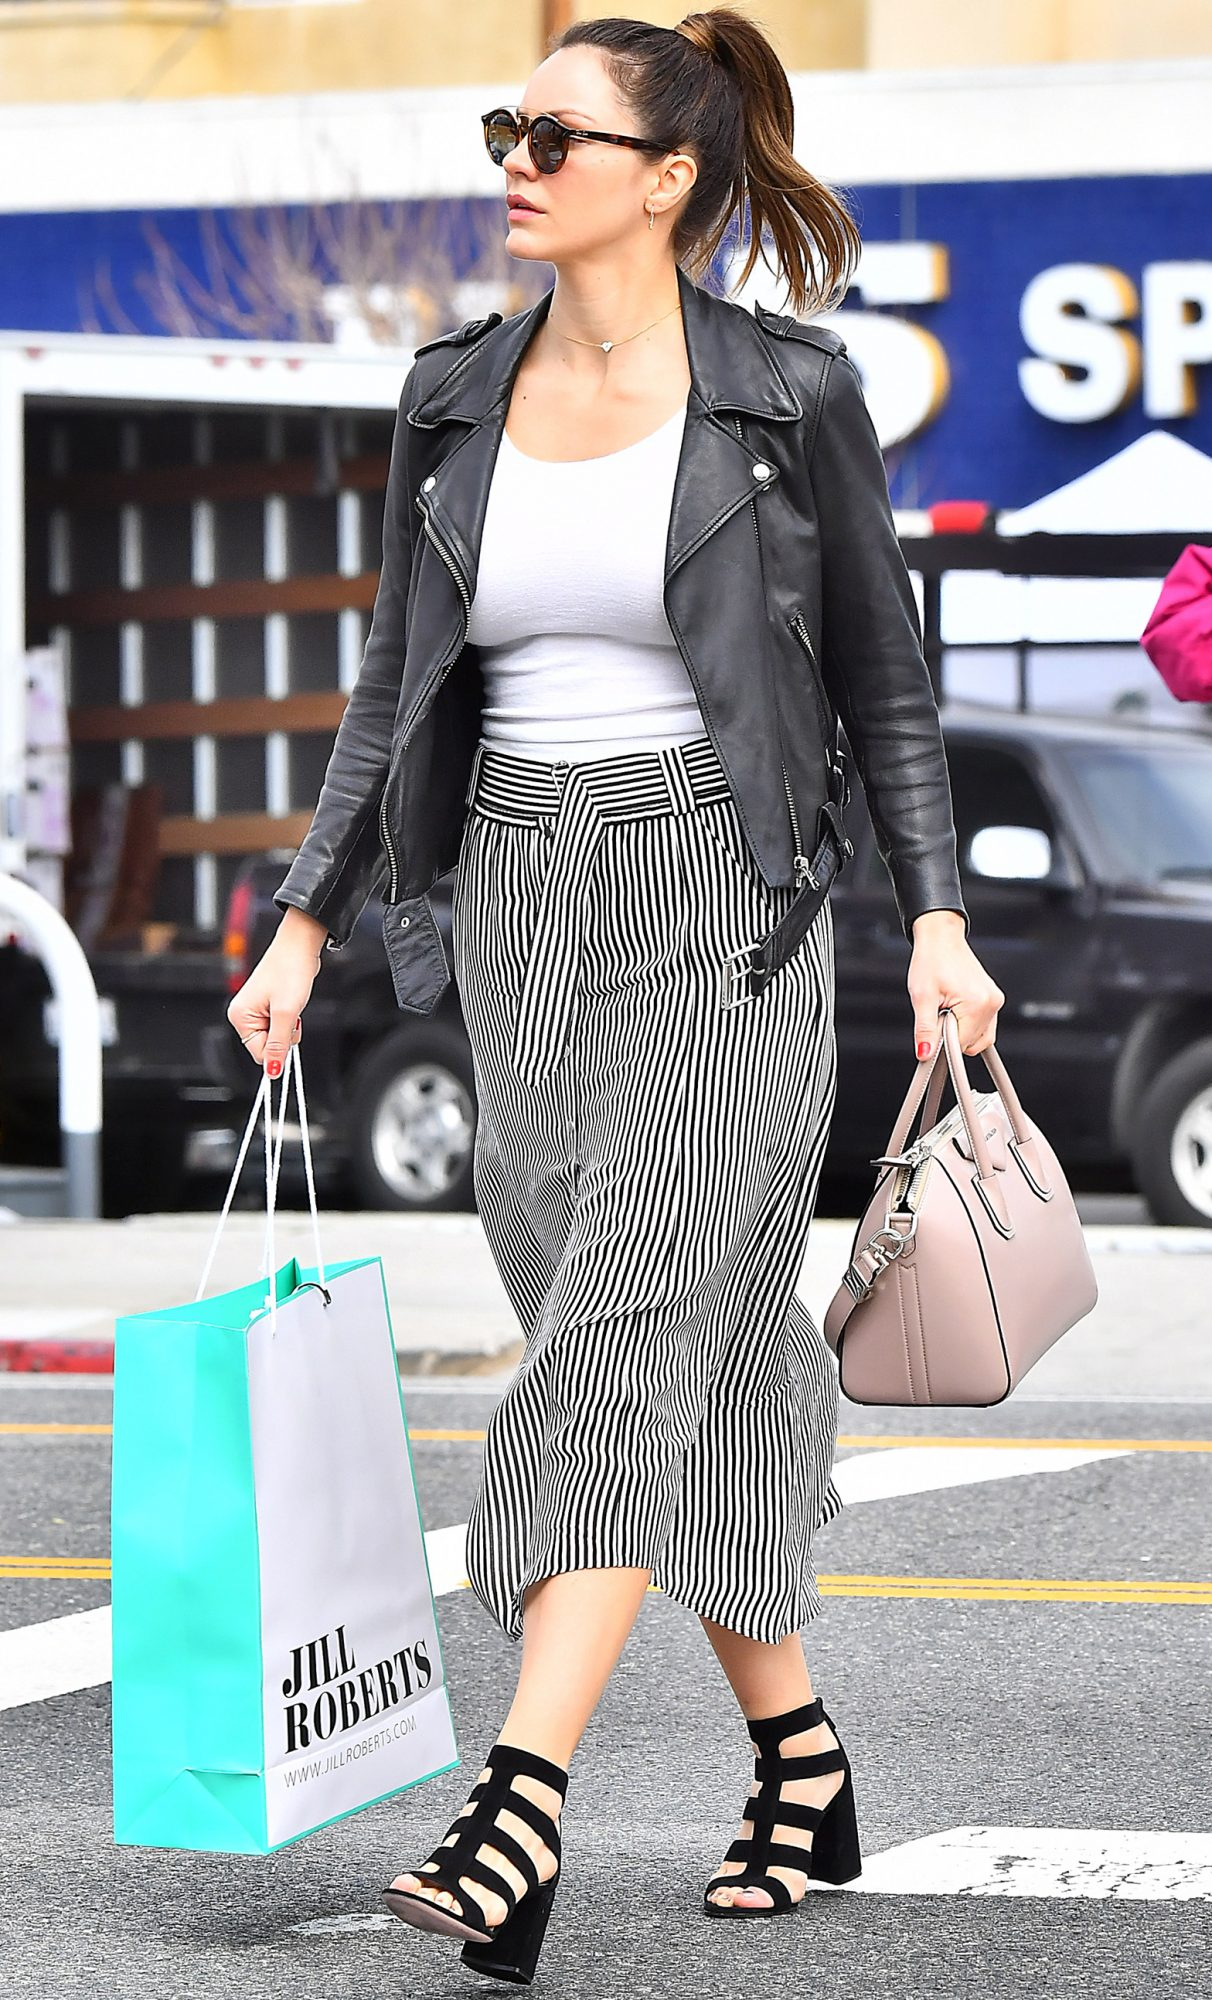 EXCLUSIVE: Katharine McPhee on a Beverly Hills Shopping Spree